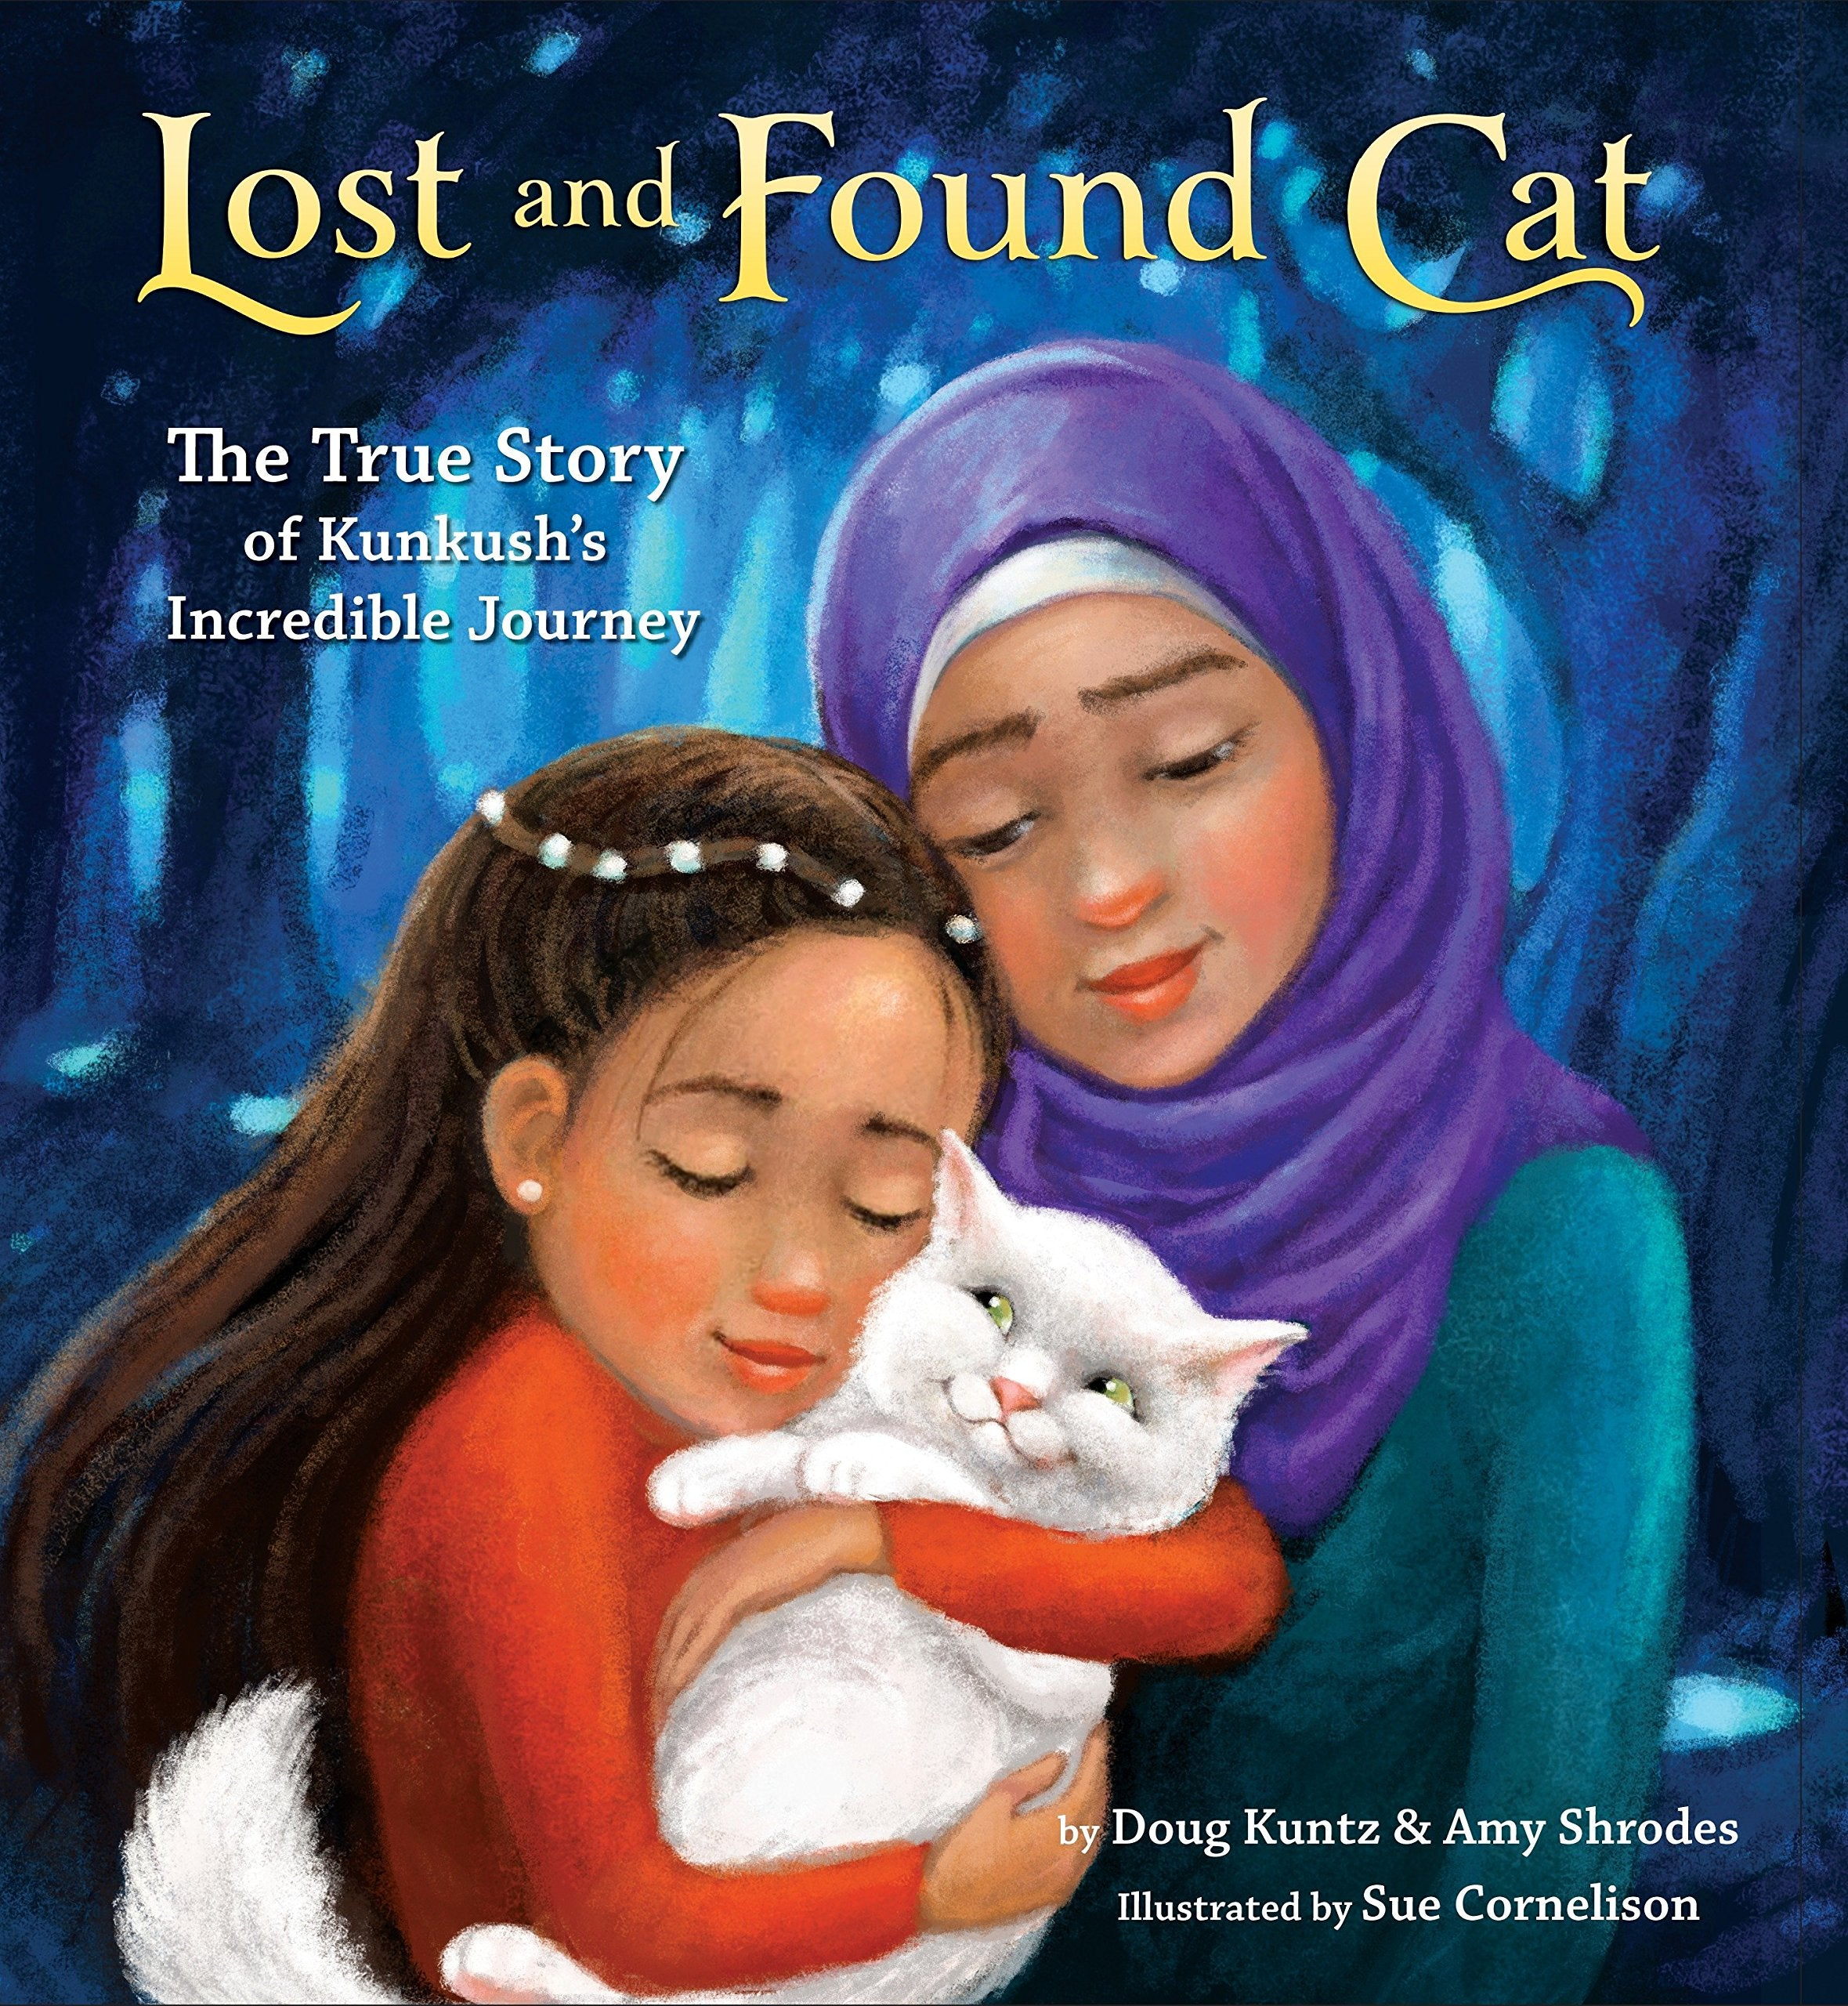 Lost and Found Cat: The True Story of Kunkush's Incredible Journey